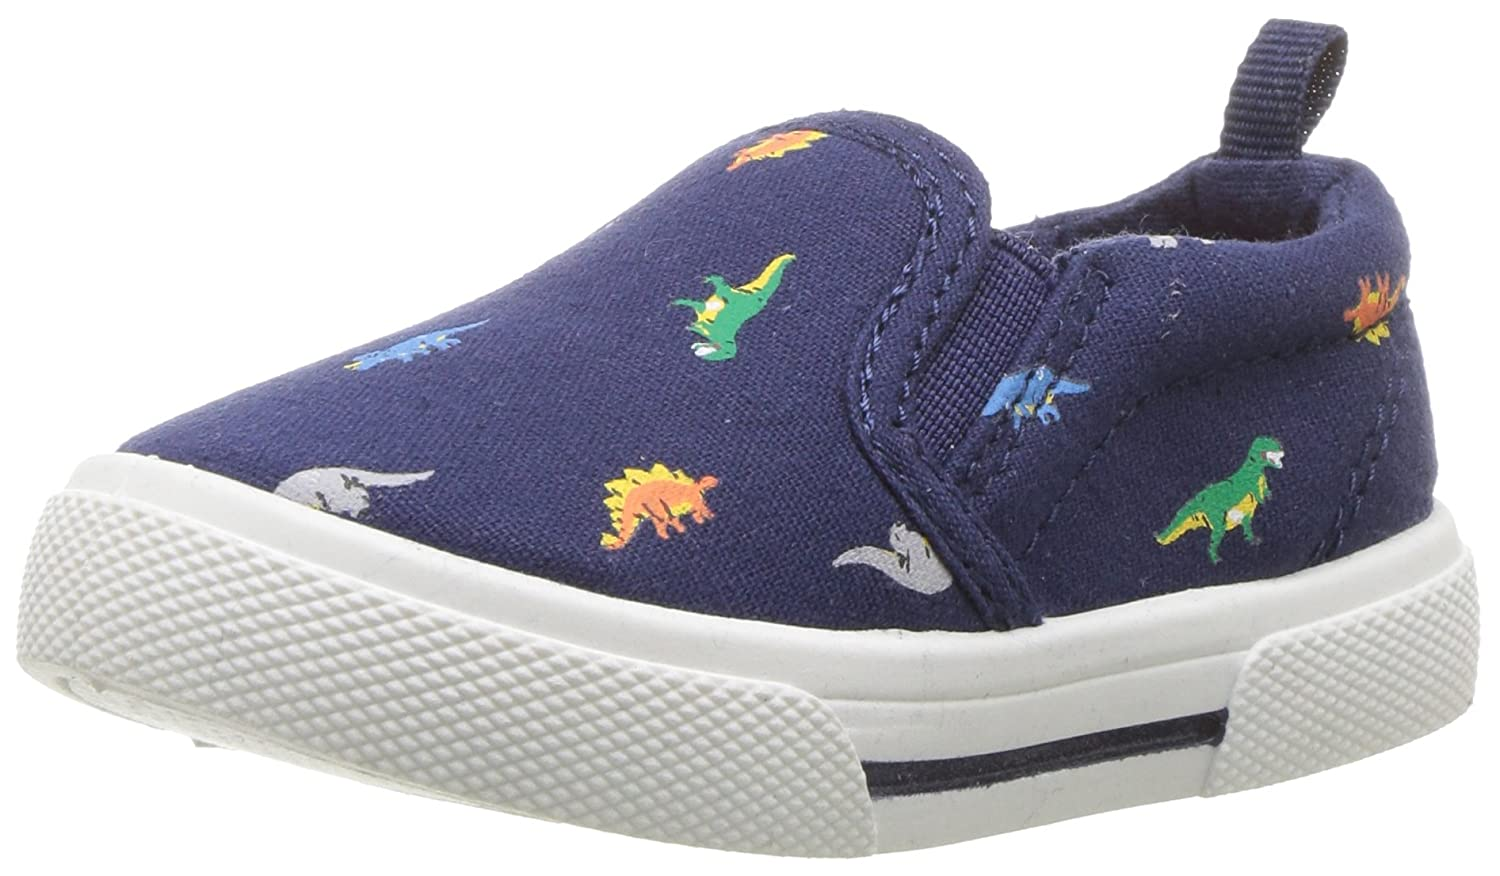 Carter's Kids' Damon5 Boy's Novelty Casual Slip-on Carter's DAMON5 - K